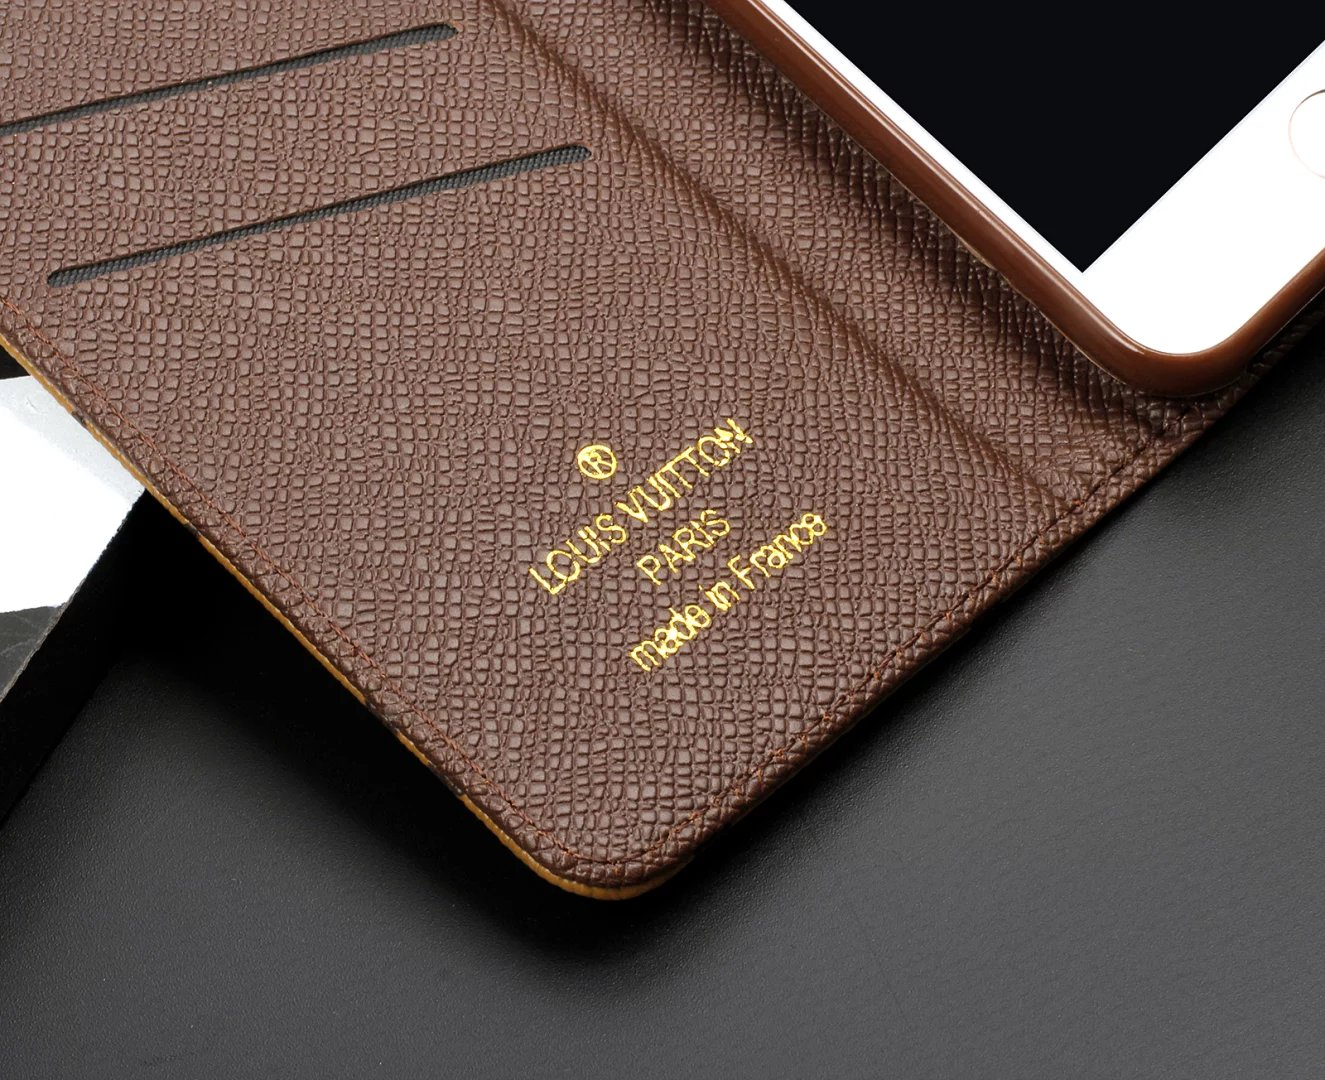 cases iphone 8 bumper case for iphone 8 Louis Vuitton iphone 8 case case phone iphone 8 branded cases custom cell phone case iphone 8 cases and accessories cool phone cases for iphone 8 case for i phone 6